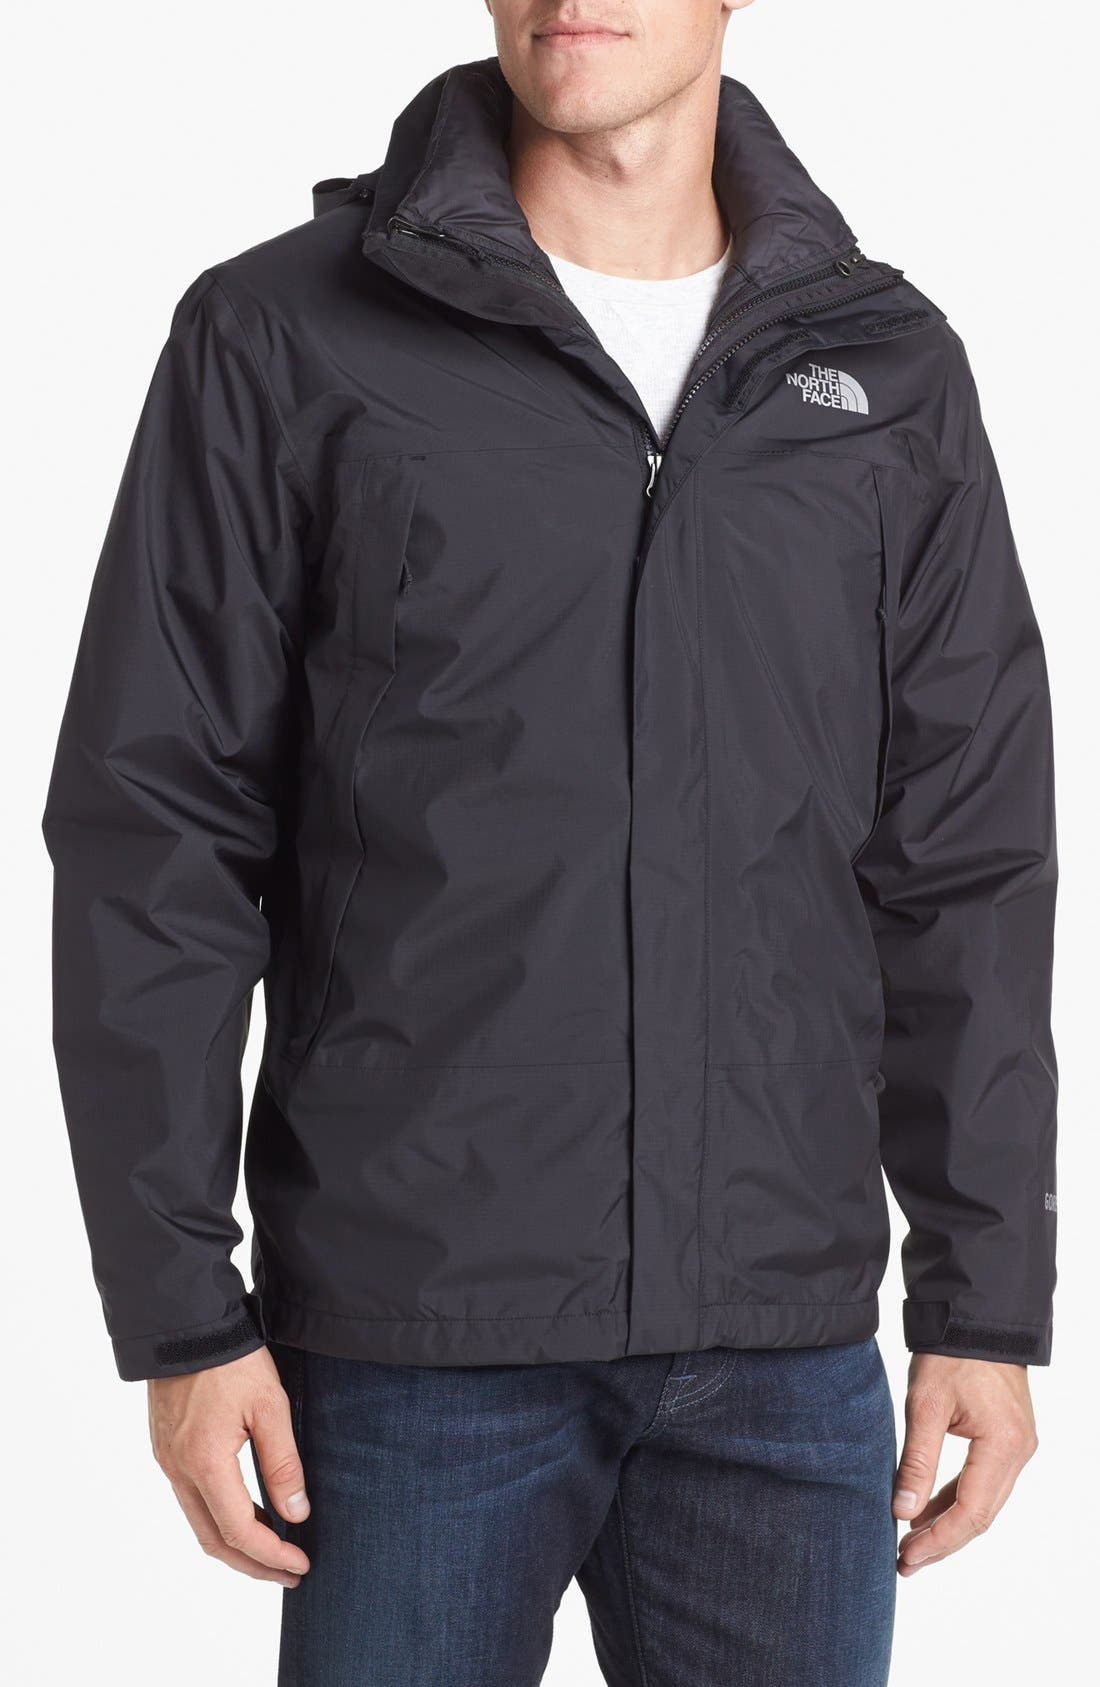 Alternate Image 1 Selected - The North Face 'Mountain Light' TriClimate® 3-in-1 Jacket